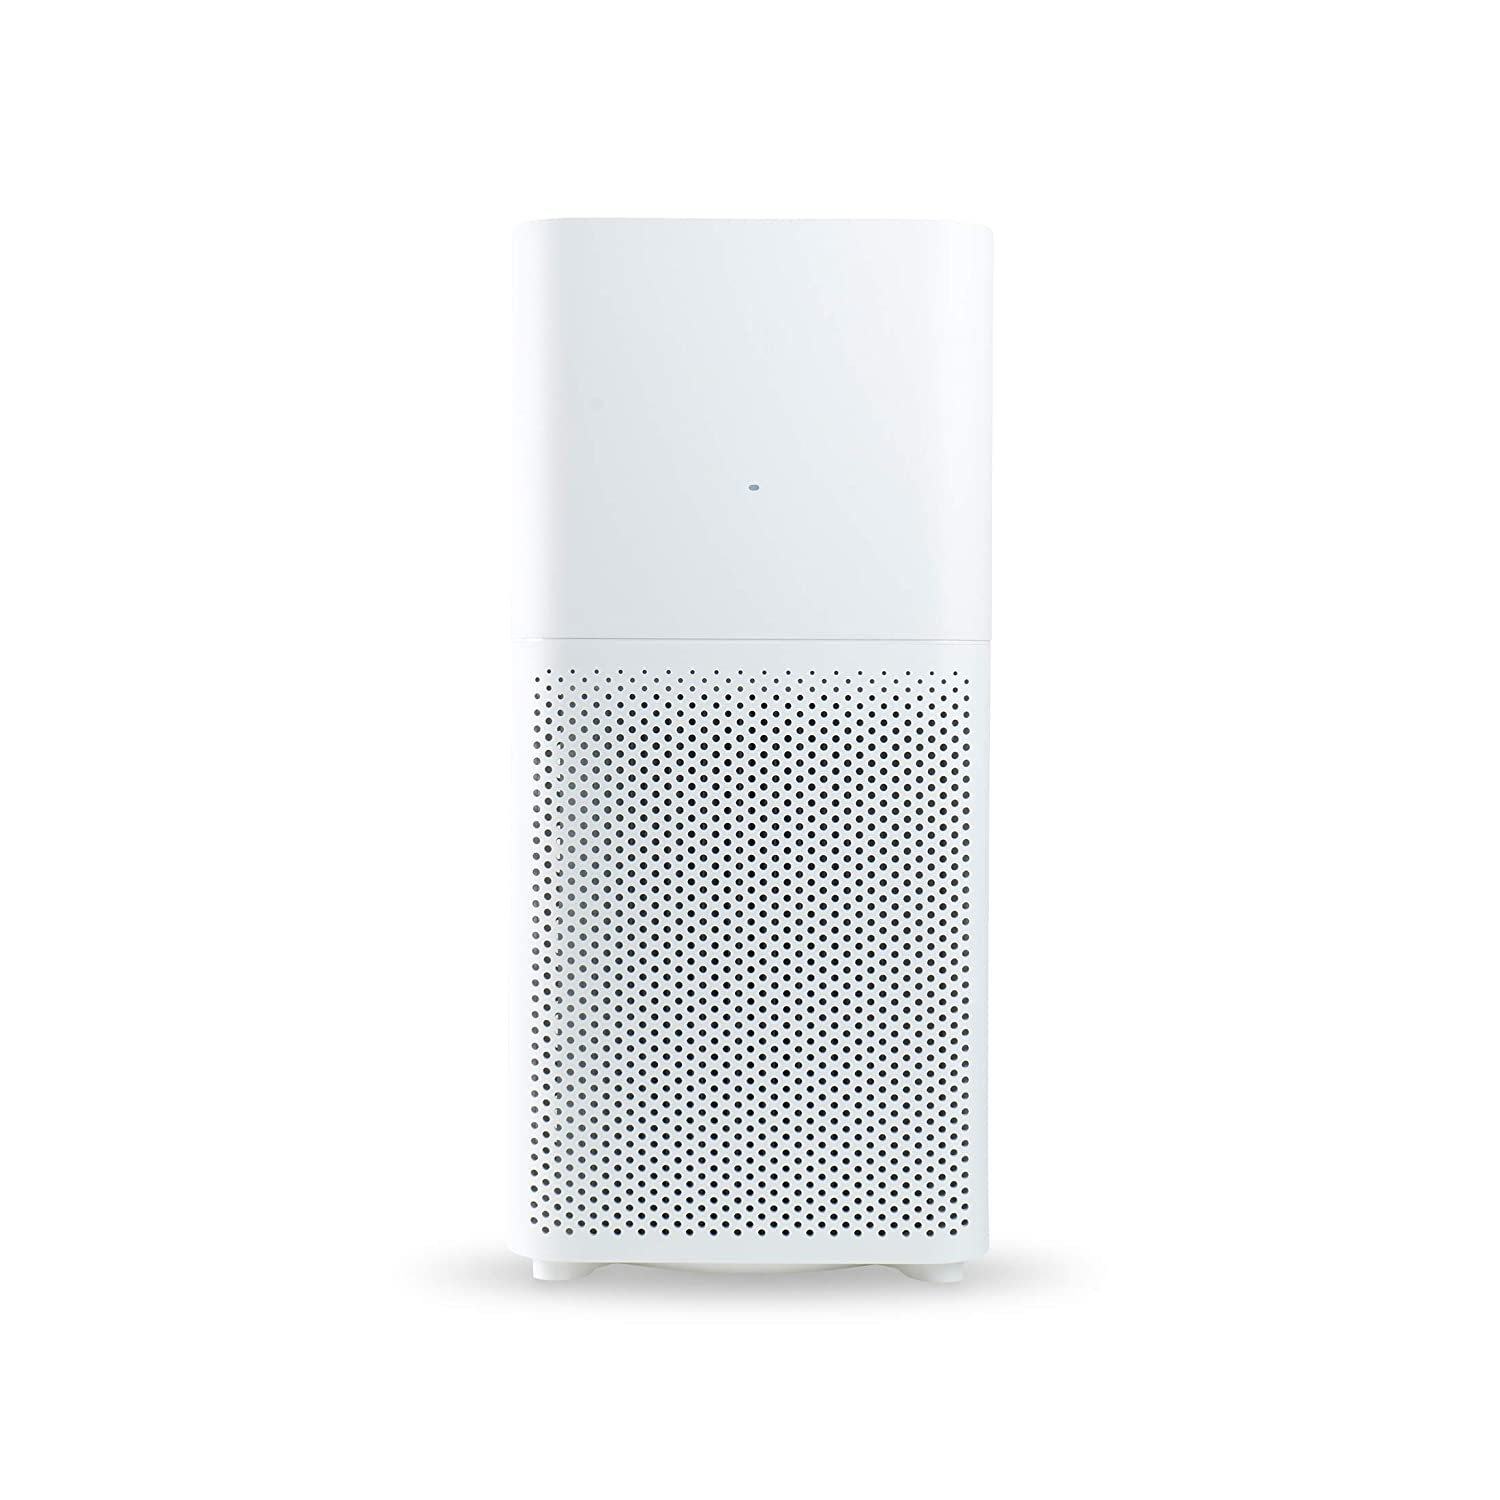 Mi Air Purifier 2C with True HEPA Filter (White)